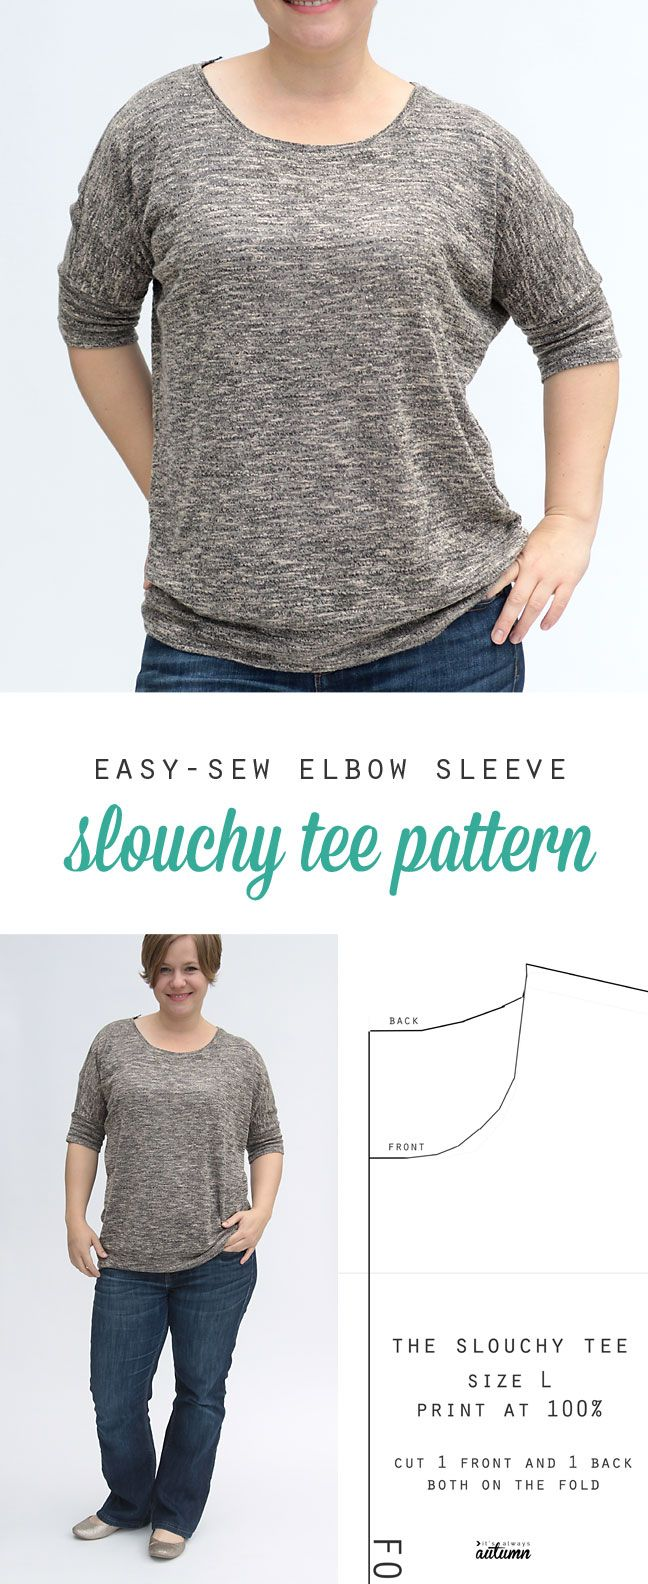 free sewing pattern for this easy women's slouchy tee in size L - with dolman elbow length sleeves